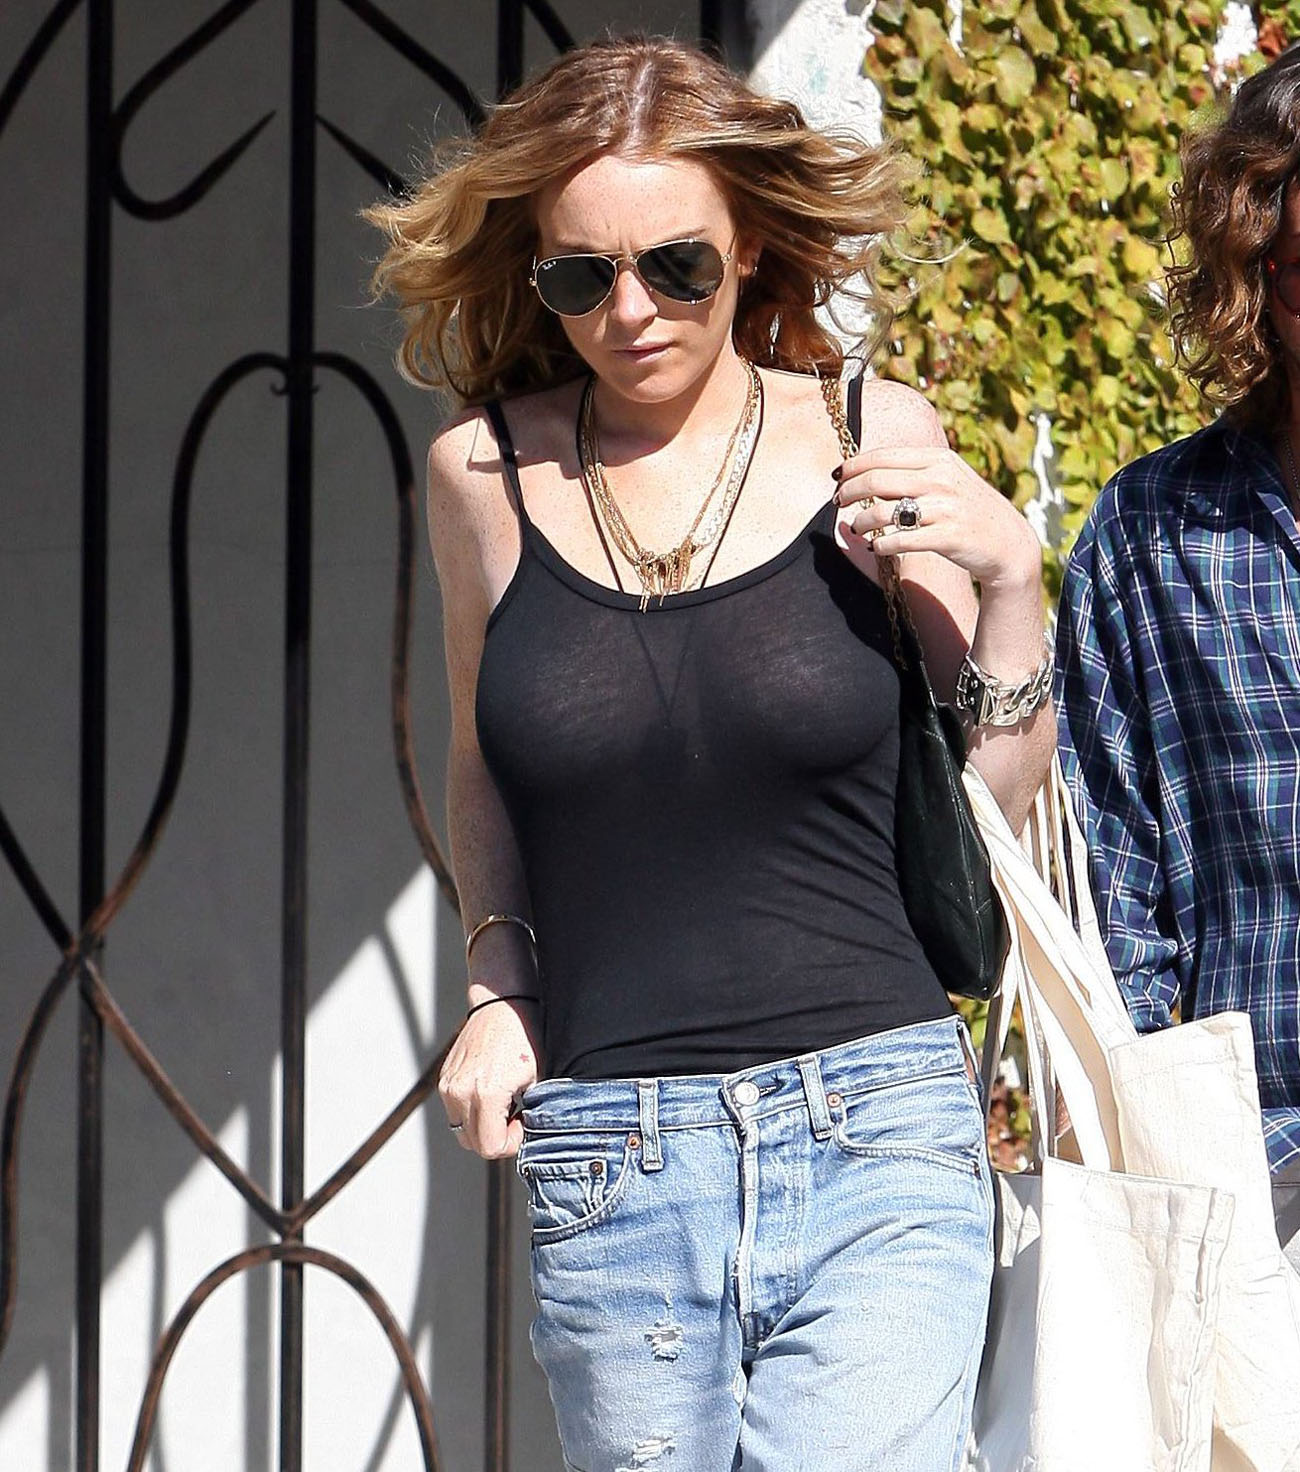 Tosh Story: Lindsay Lohan Wants You To See Her Inside Beauty